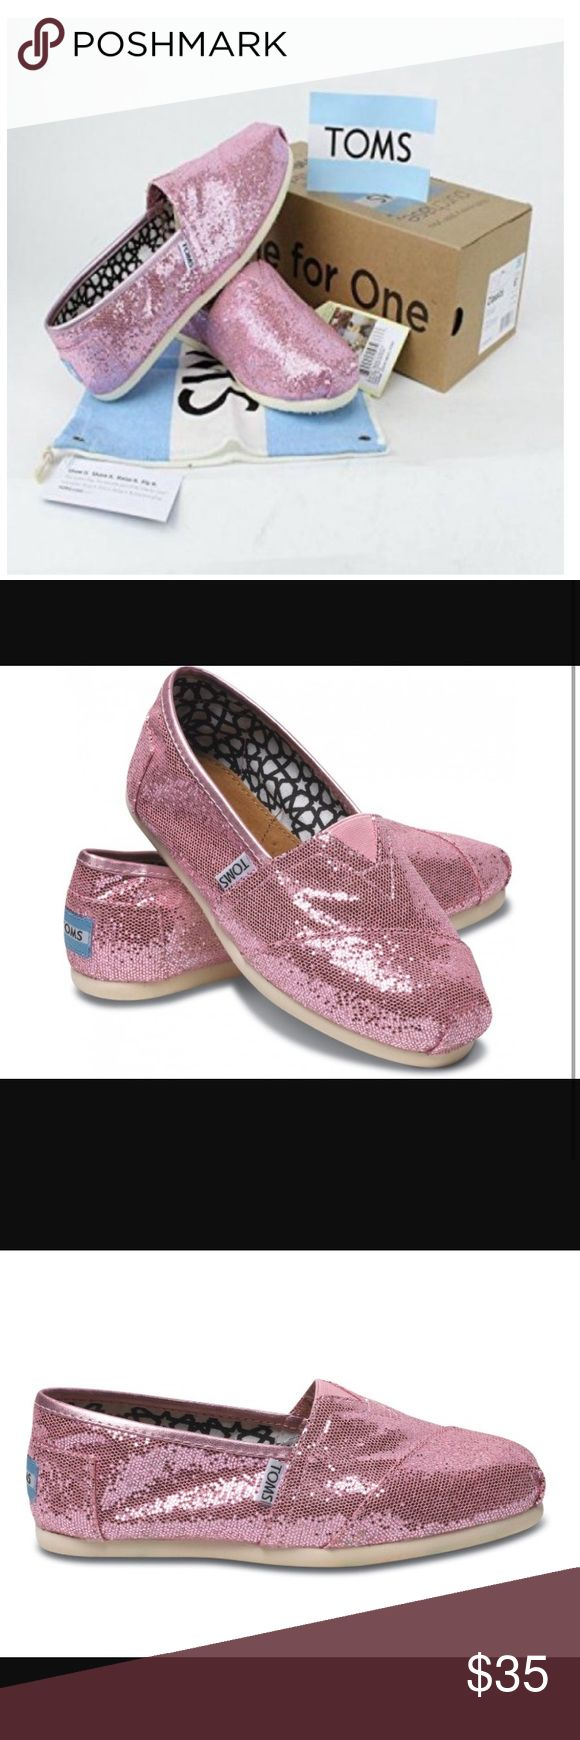 NWT Pink Glitter Toms Brand new condition, in box. Comes with bag and sticker. So cute! Toms Shoes Flats & Loafers